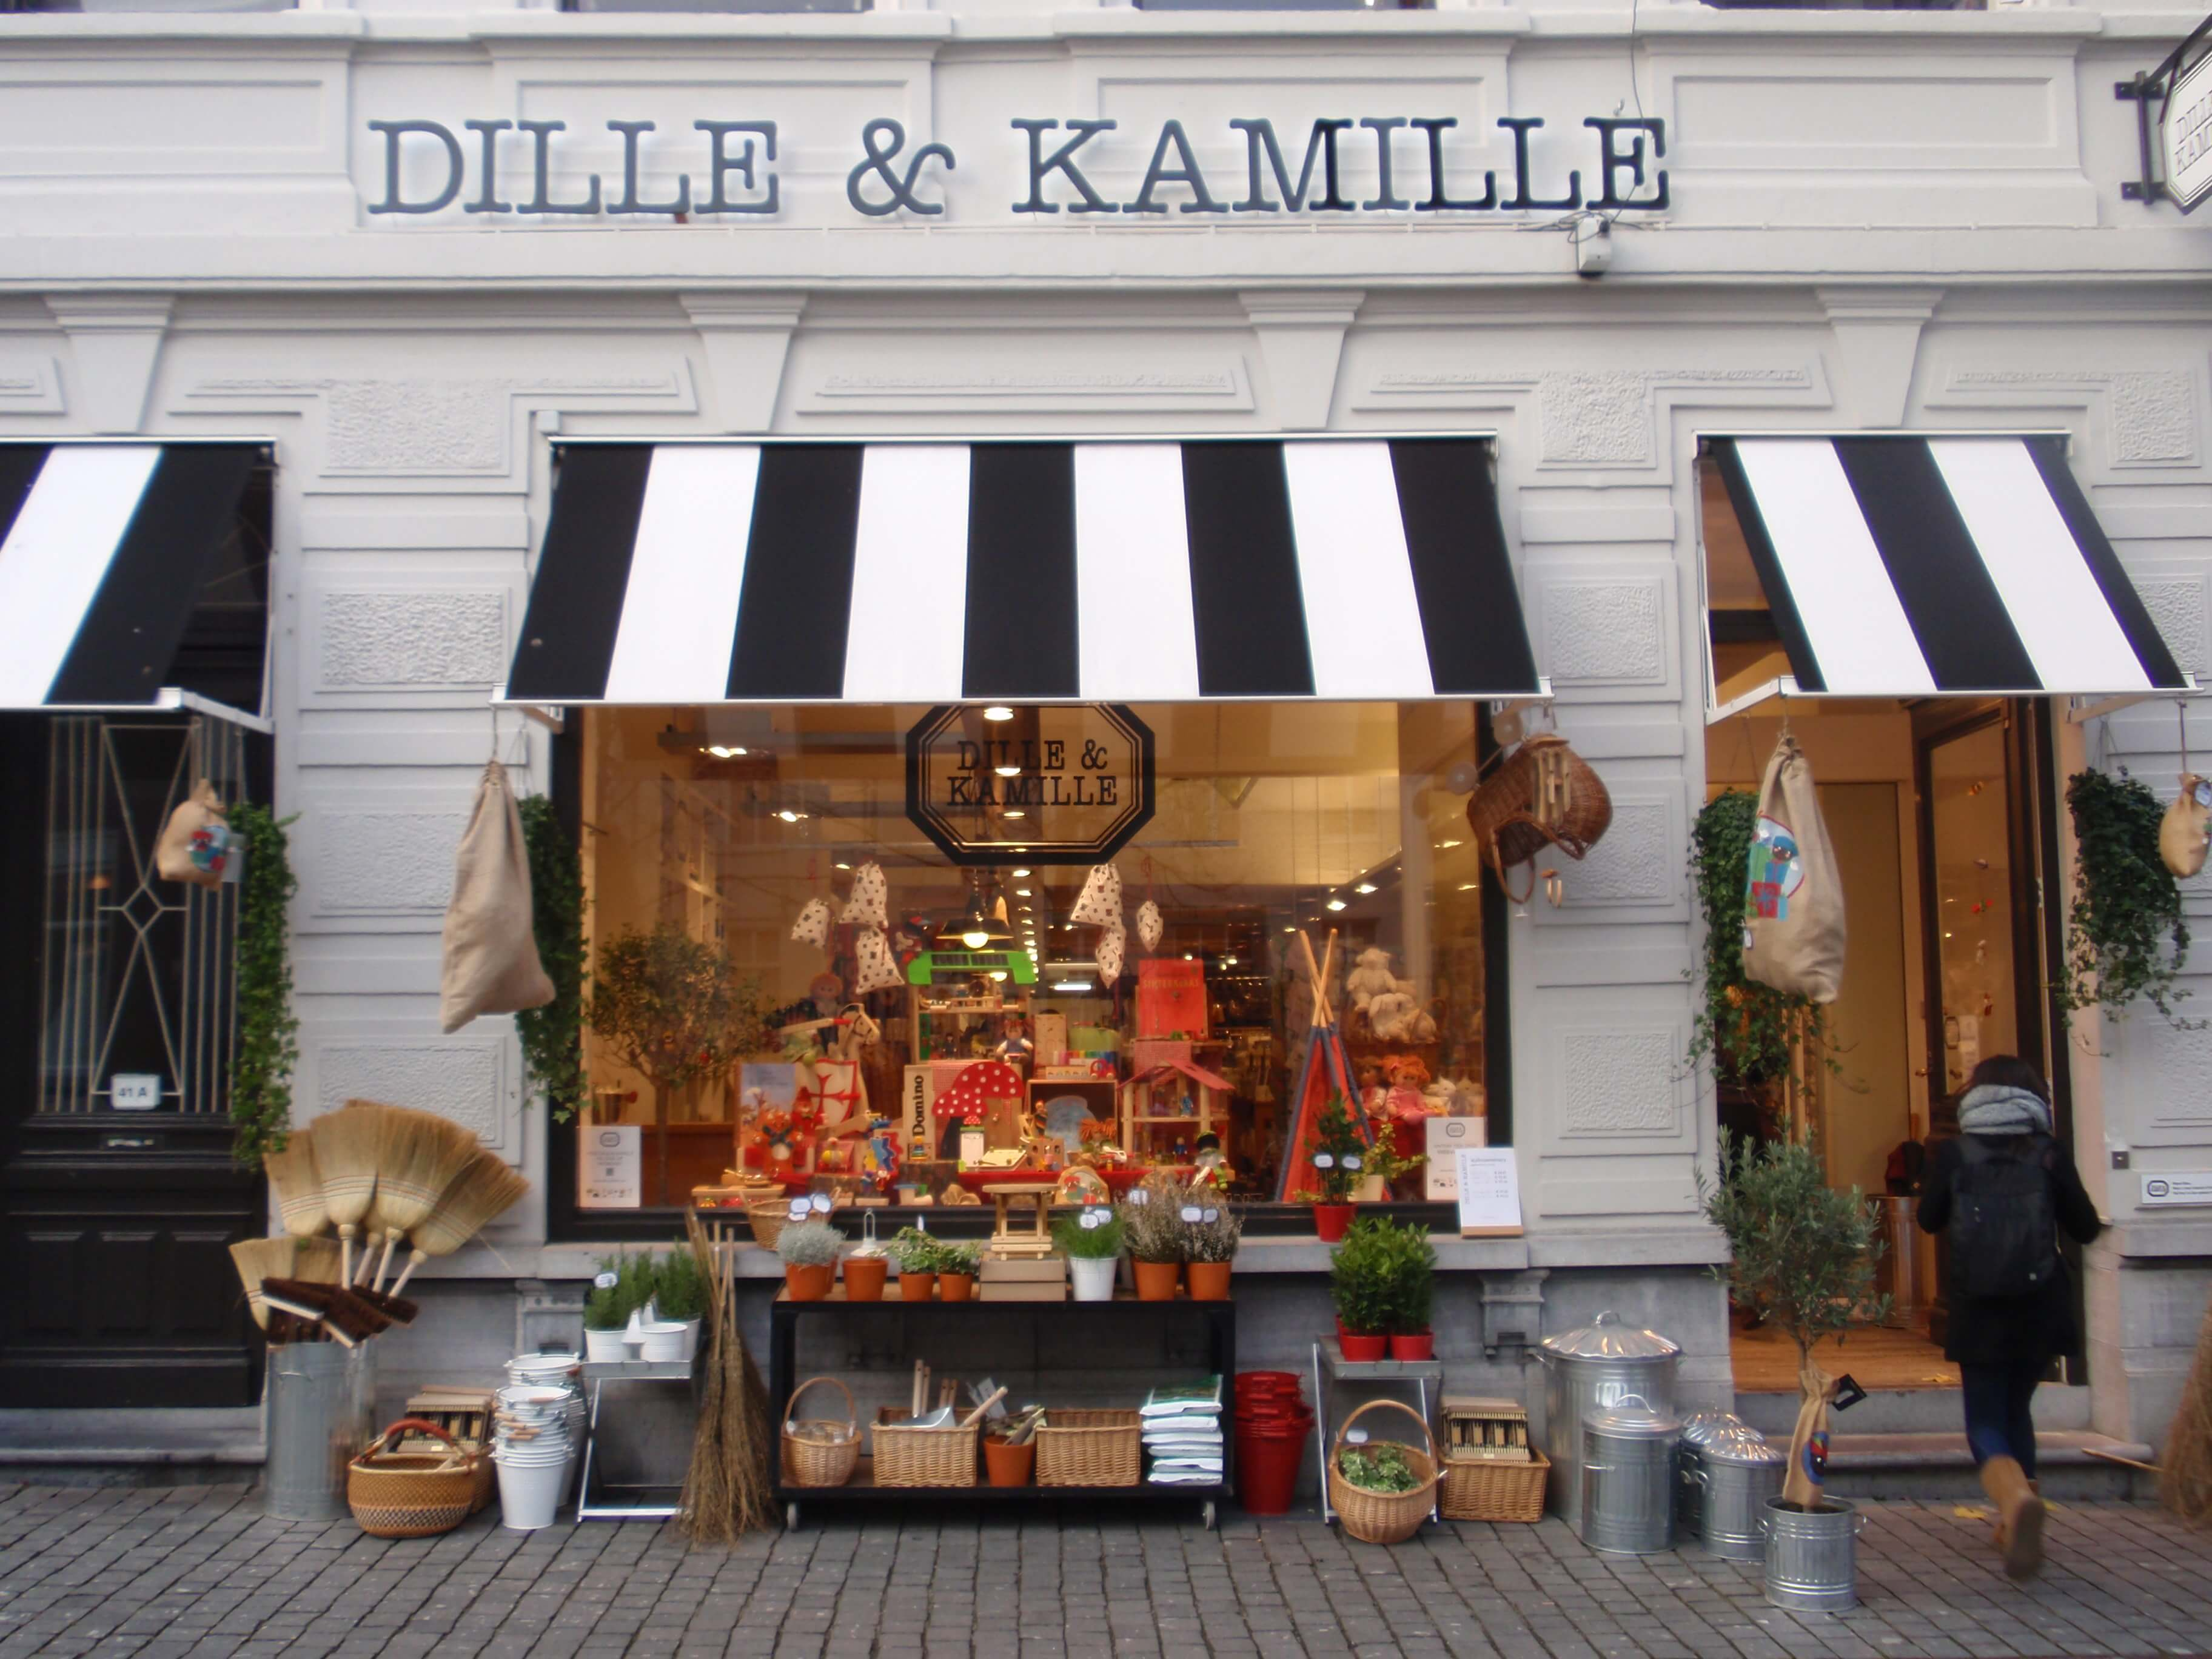 Dille & Kamille Store l Viving.nl